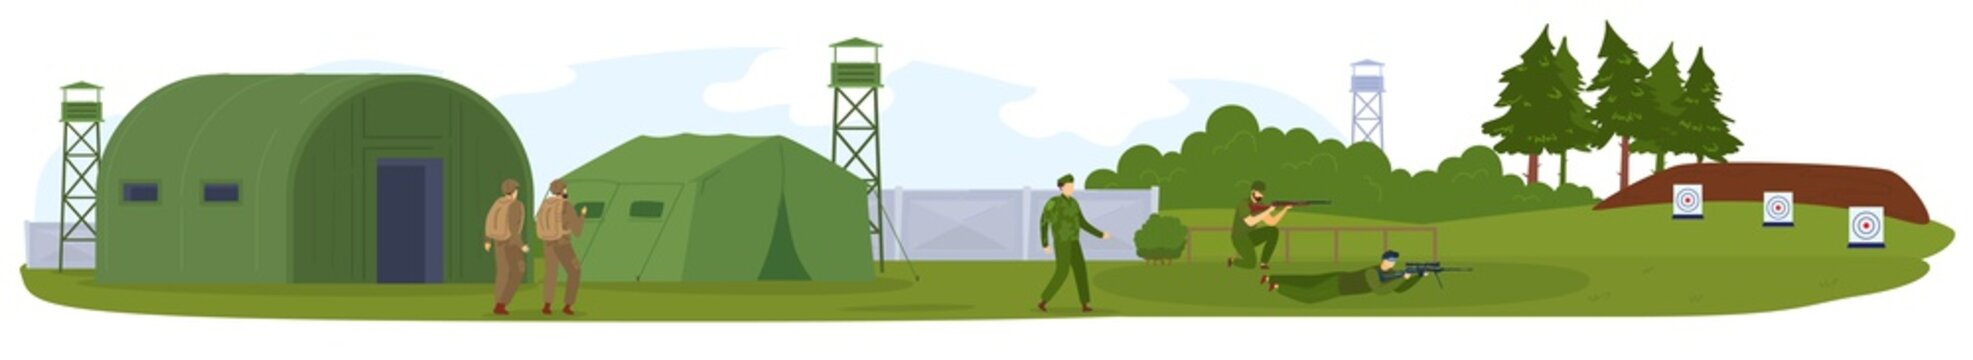 Military army force, base or camp with armed solgiers in camouflage vector illustration. War game landscape. Militarian people in uniform shooting. Milirarism. Green tents, combats.